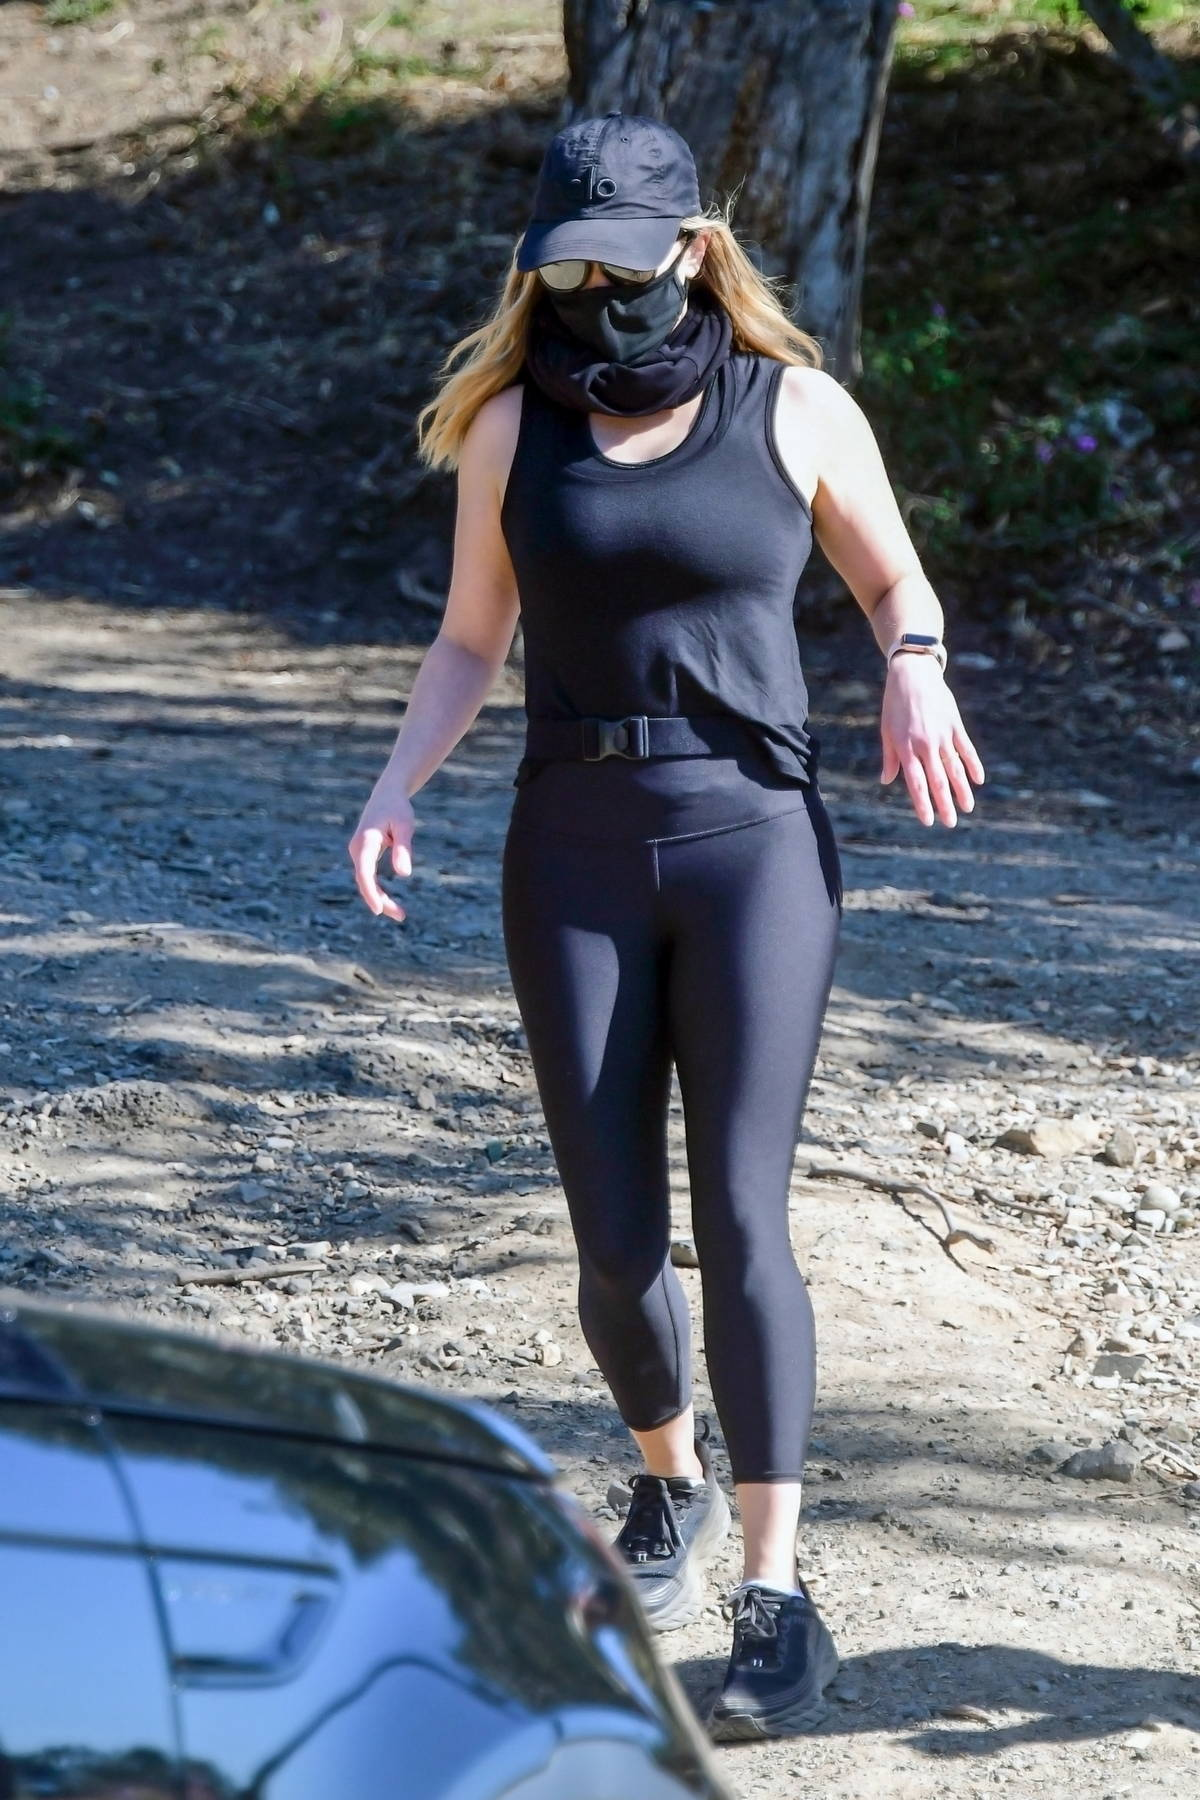 Reese Witherspoon sports black tank top and leggings during a morning hike with a friend in Los Angeles